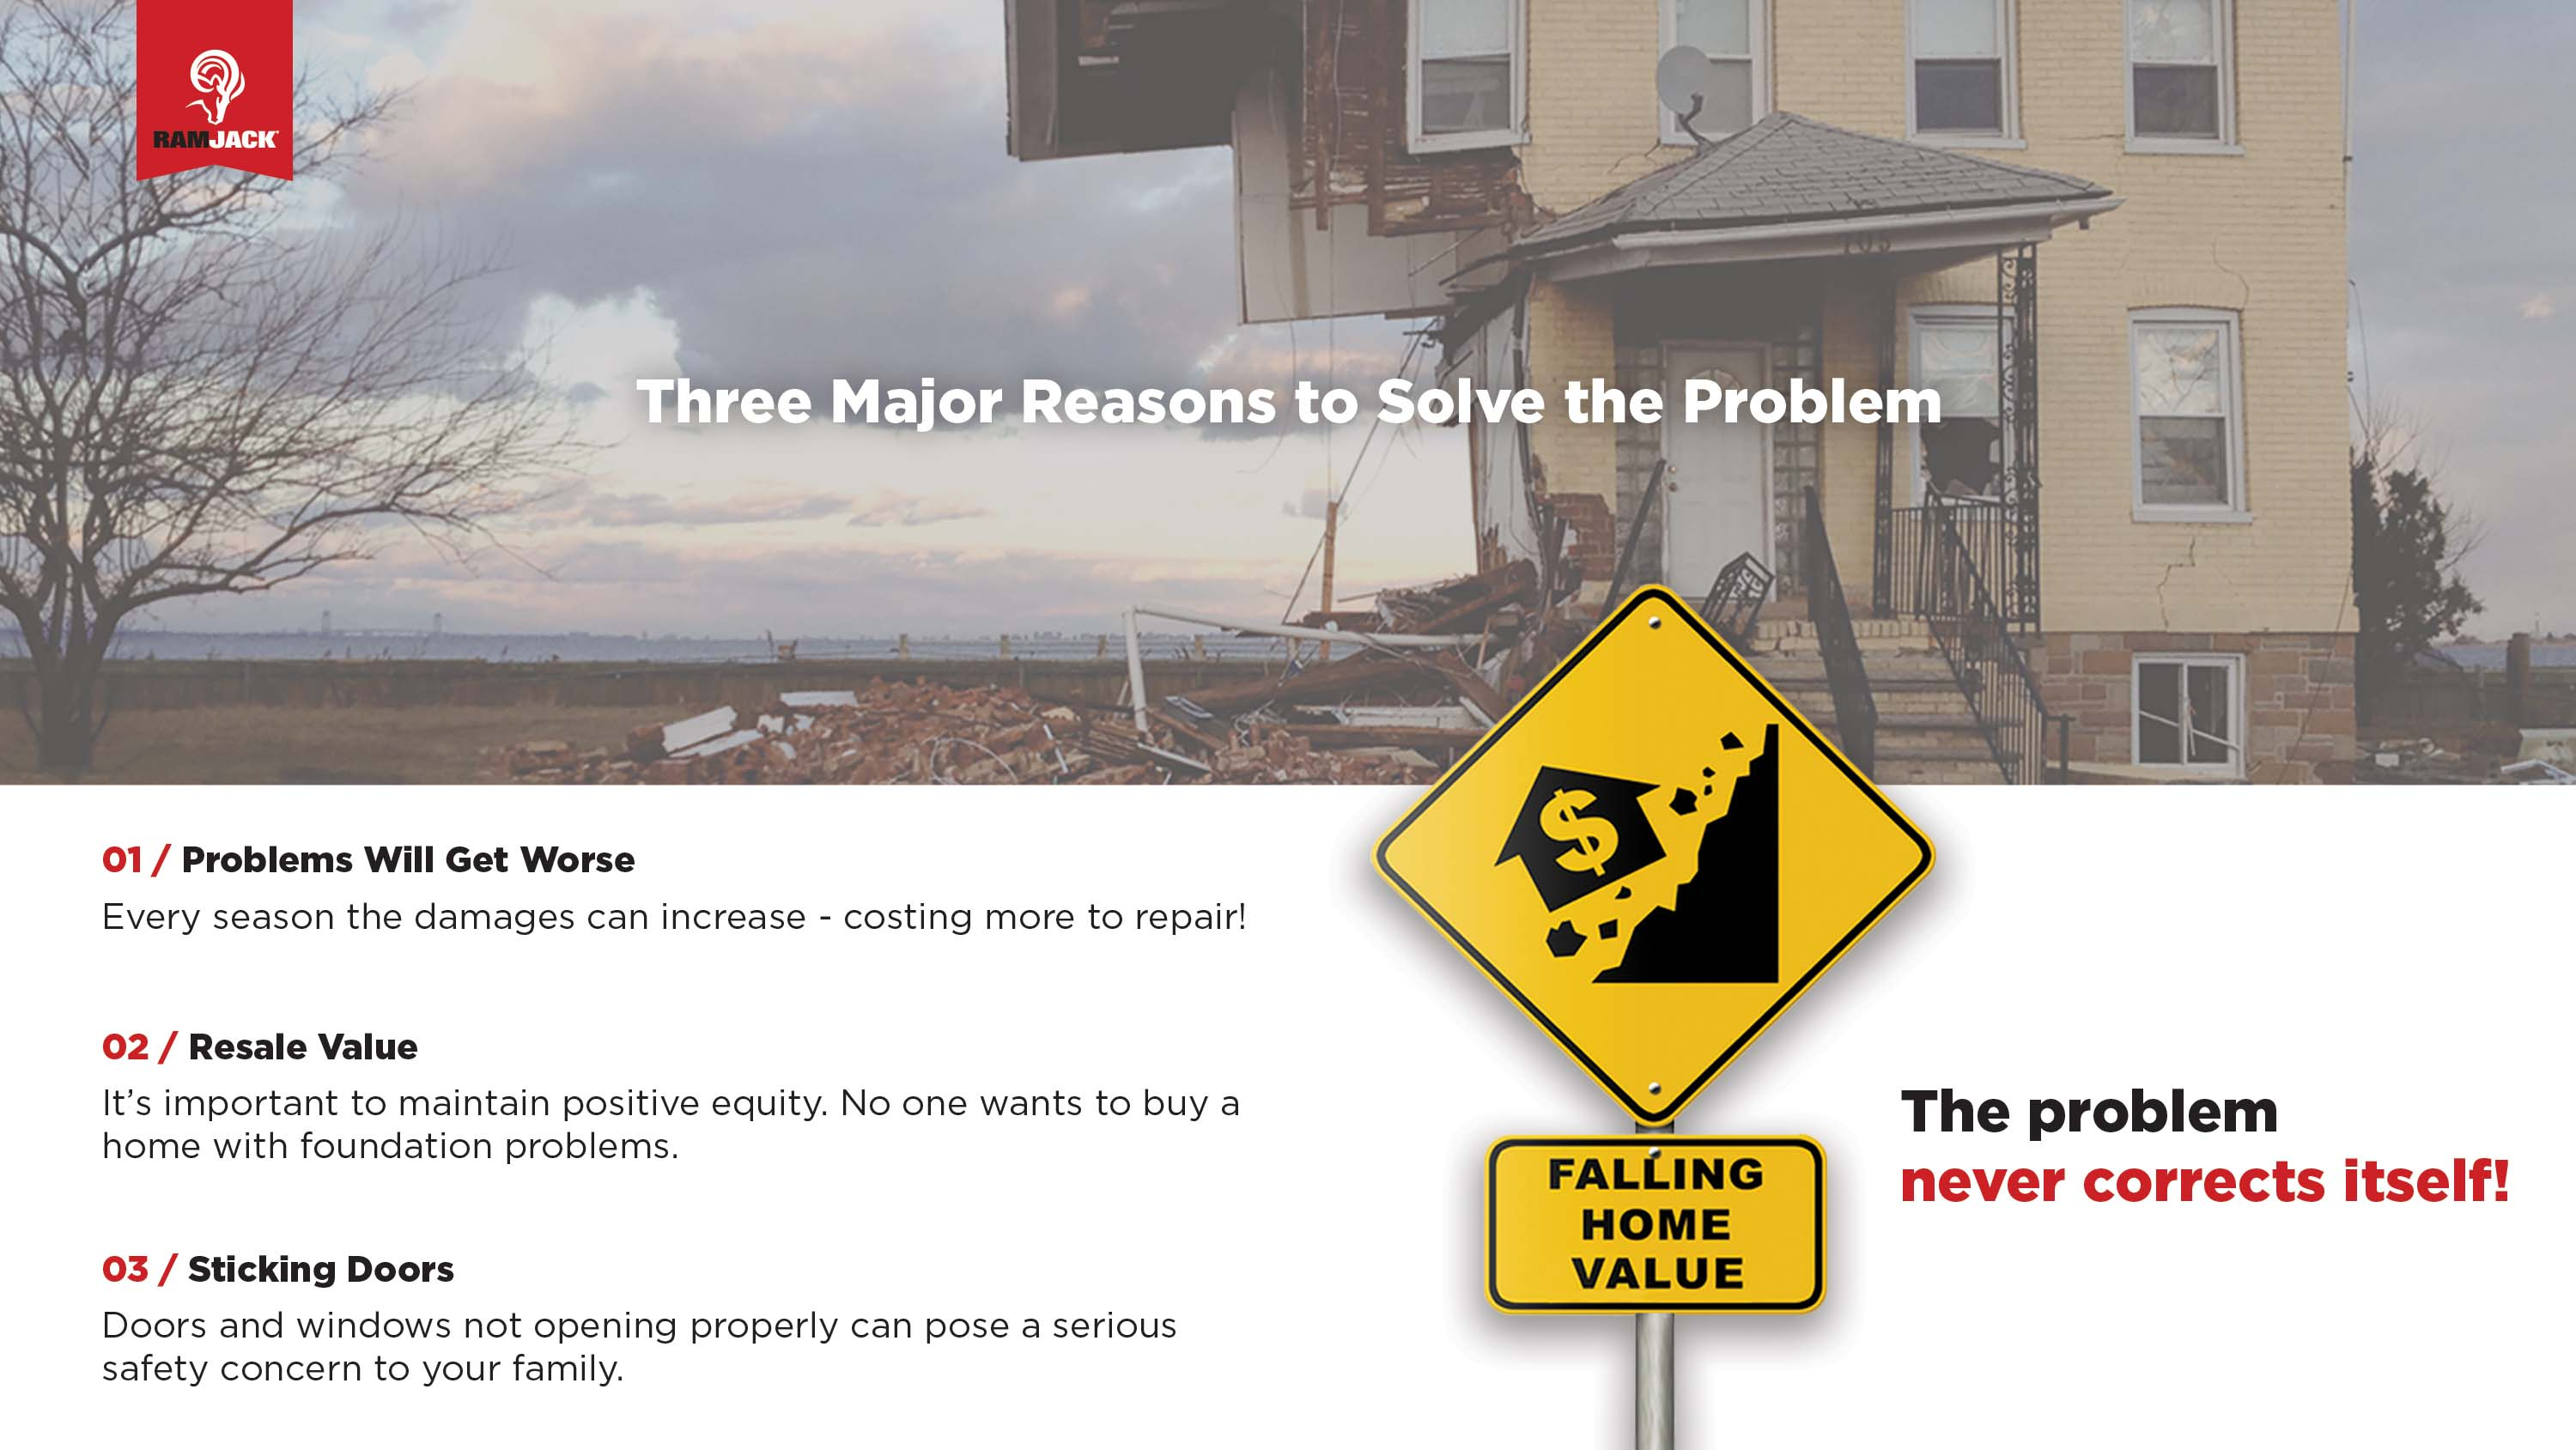 Infographic: 3 major reasons to solve the problem